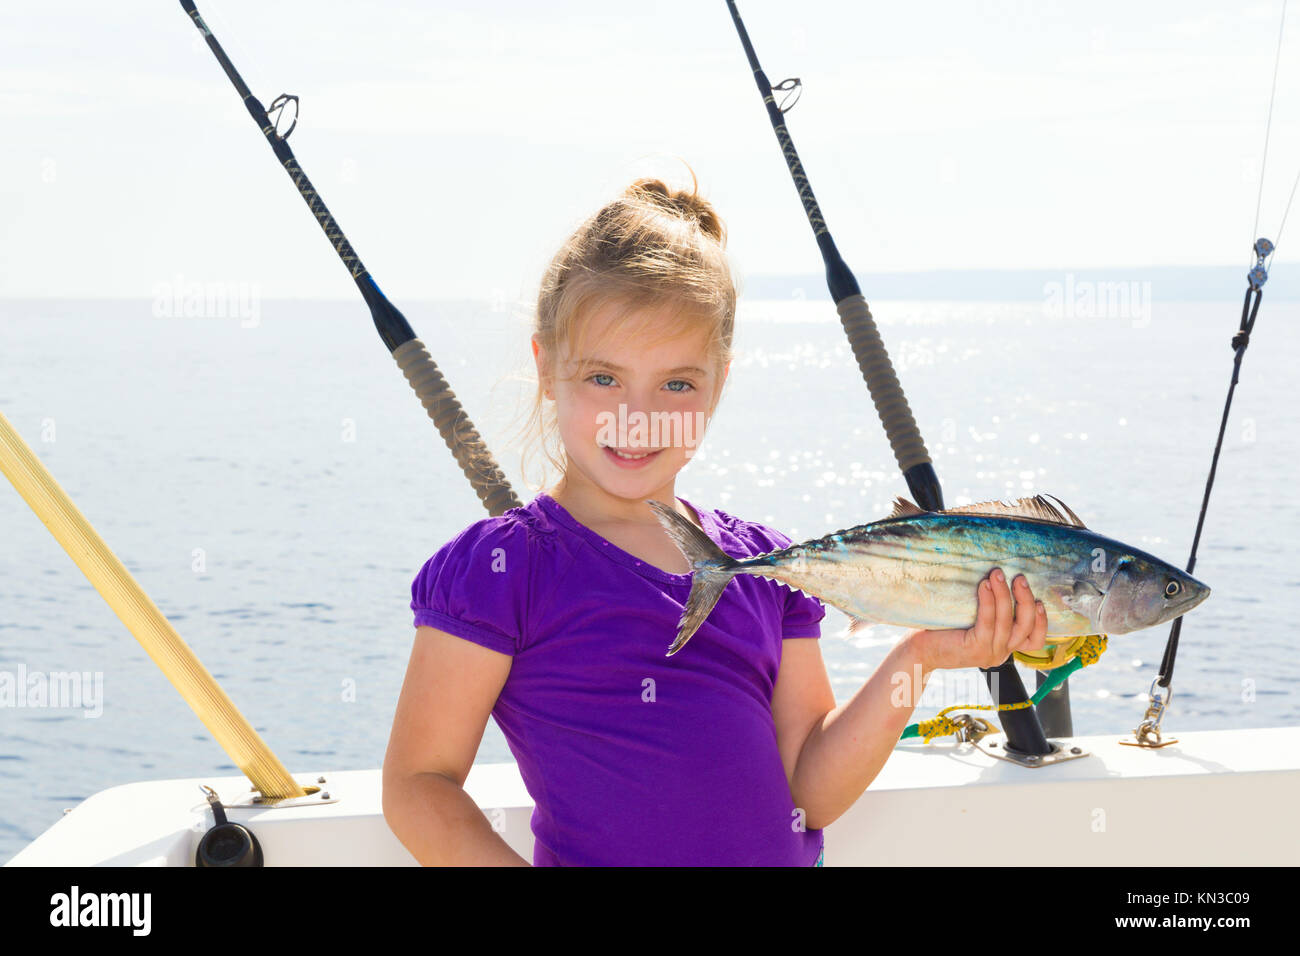 Boat fishing rod in mediterranean stock photos boat for Girl fishing pole